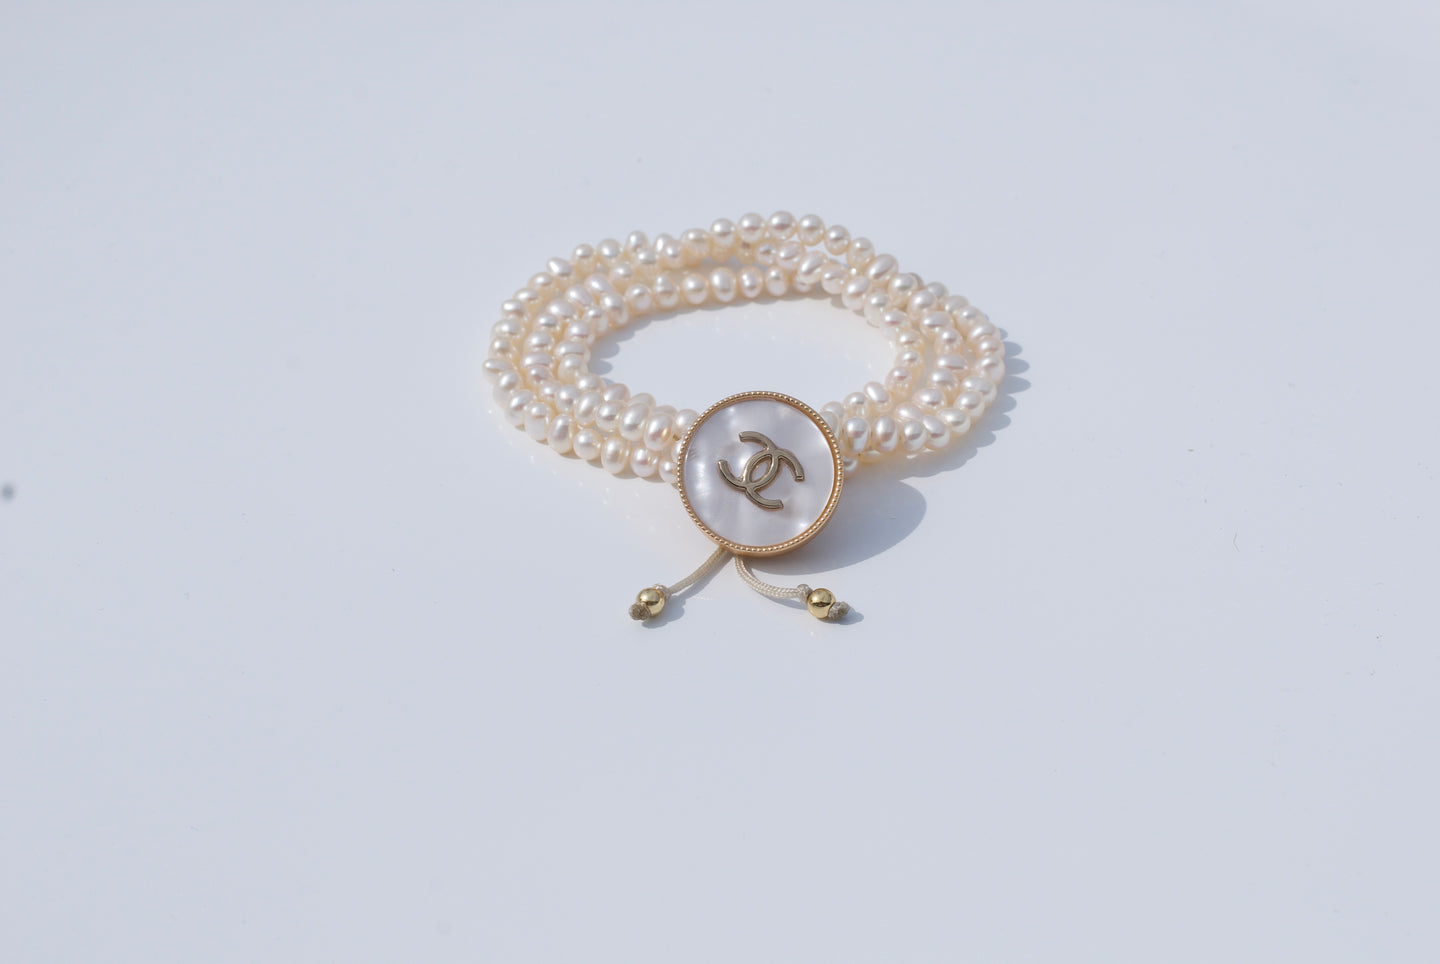 CC Mother of Pearl Upcycled Button Bracelet with Pearls